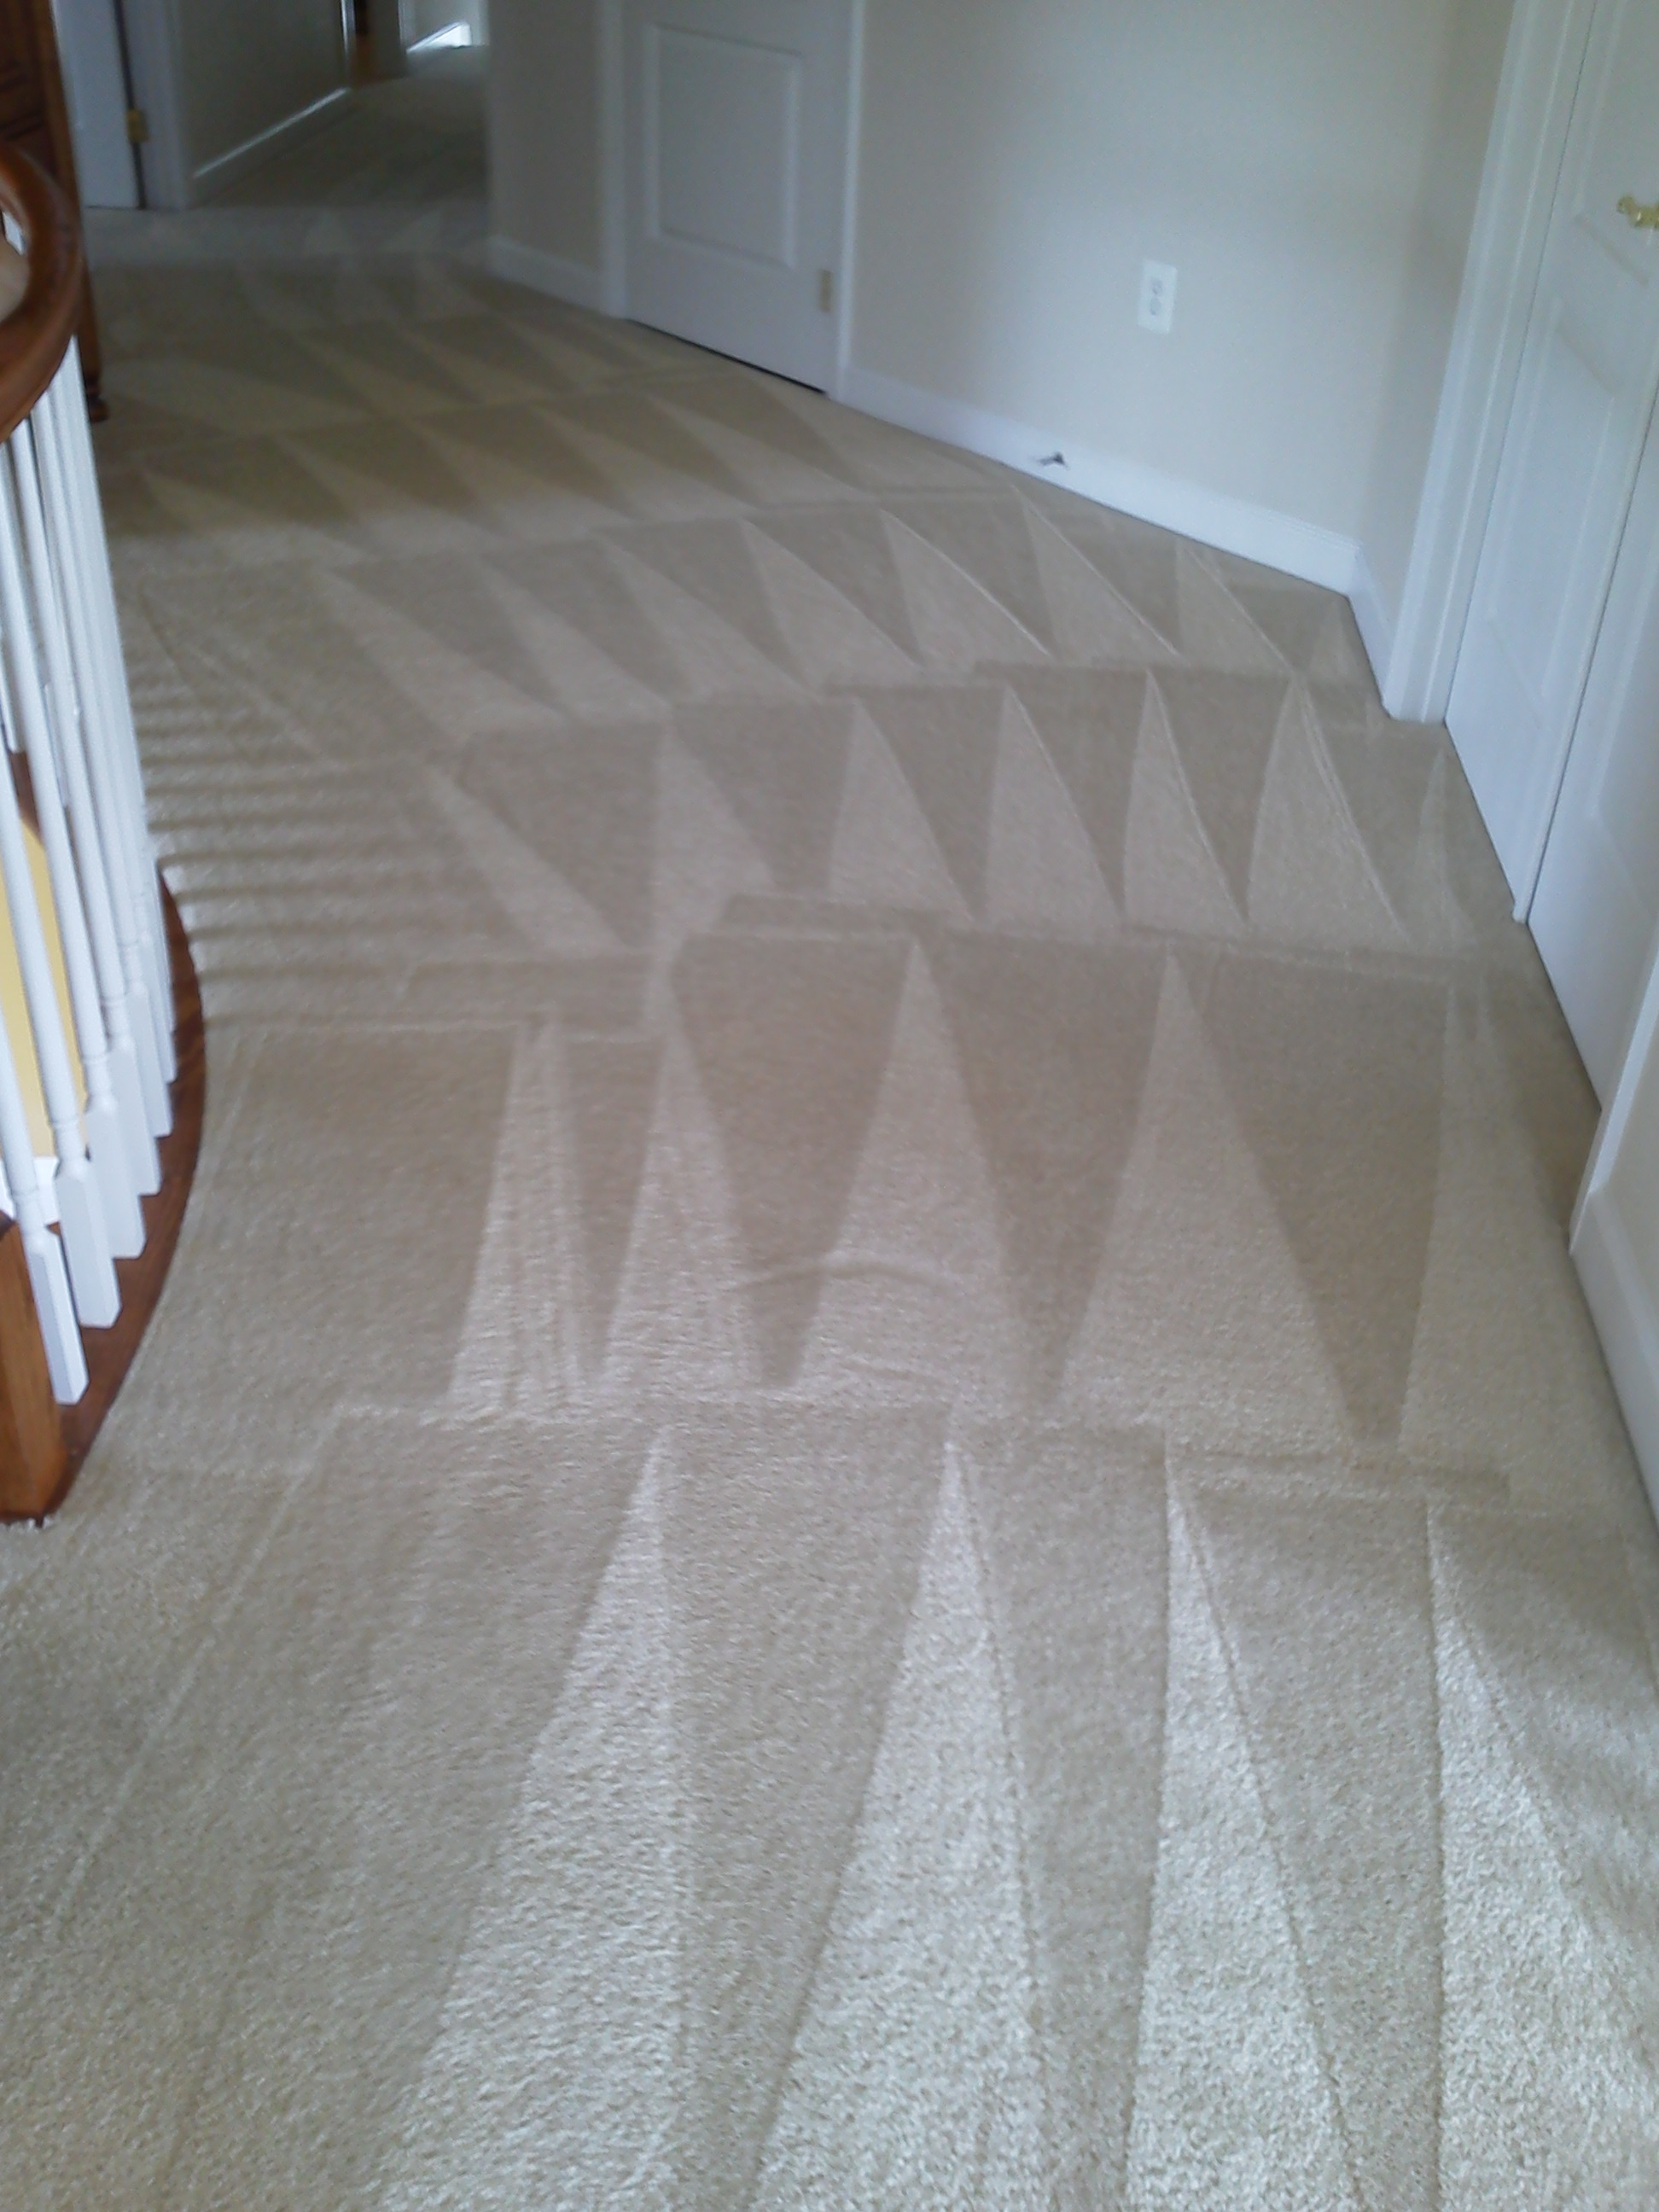 Carpet Cleaning Stafford - Pristine Tile & Carpet Cleaning